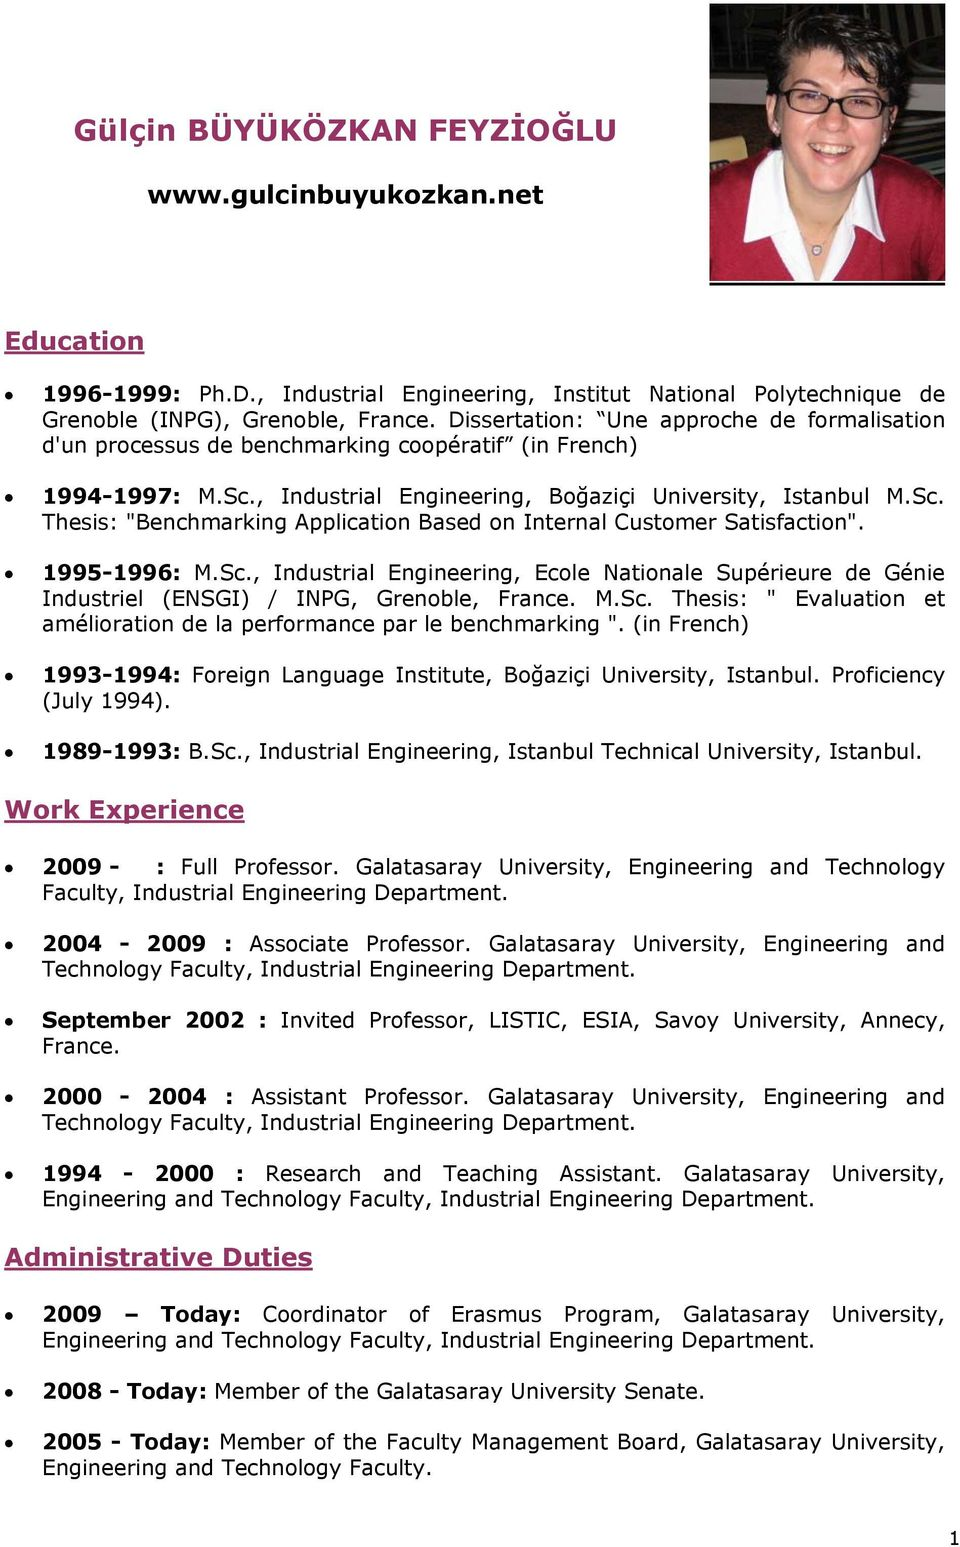 "1995-1996: M.Sc., Industrial Engineering, Ecole Nationale Supérieure de Génie Industriel (ENSGI) / INPG, Grenoble, France. M.Sc. Thesis: "" Evaluation et amélioration de la performance par le benchmarking ""."